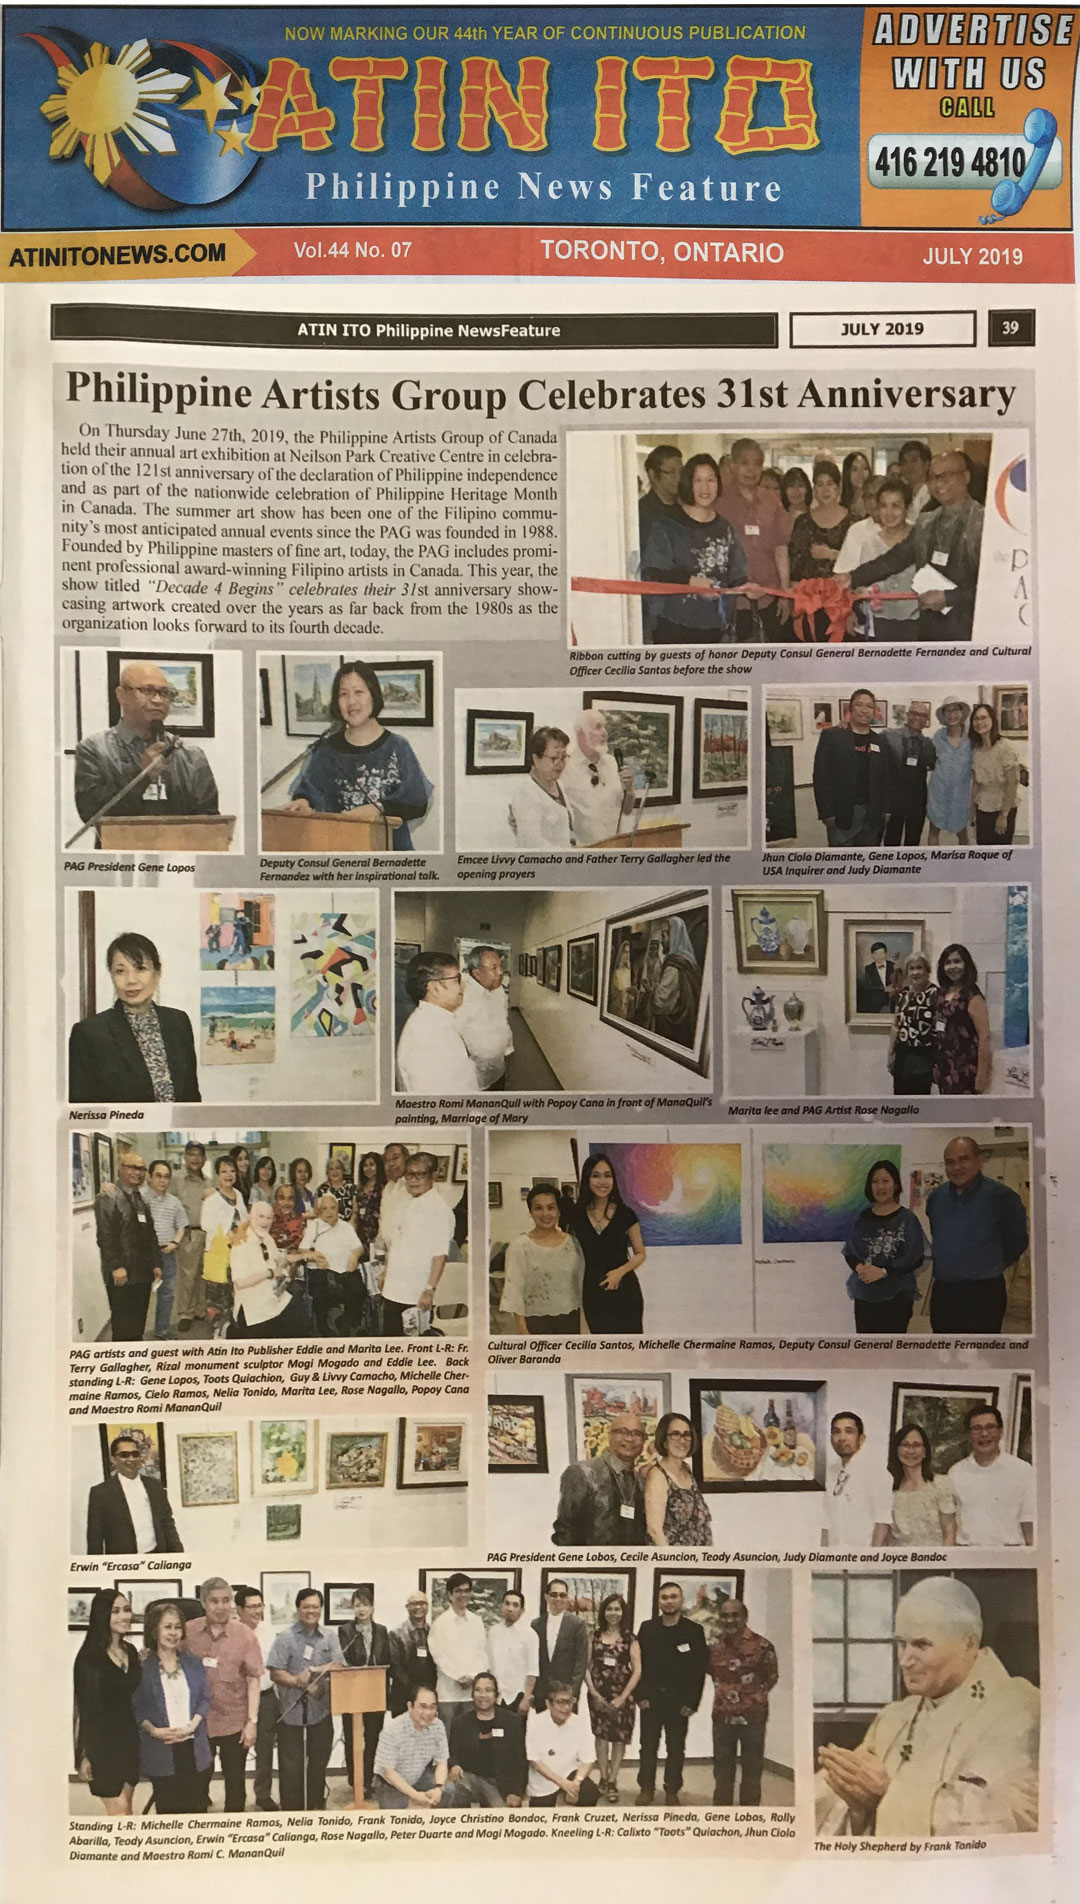 Philippine Artists Group of Canada Celebrates 31st Anniversary